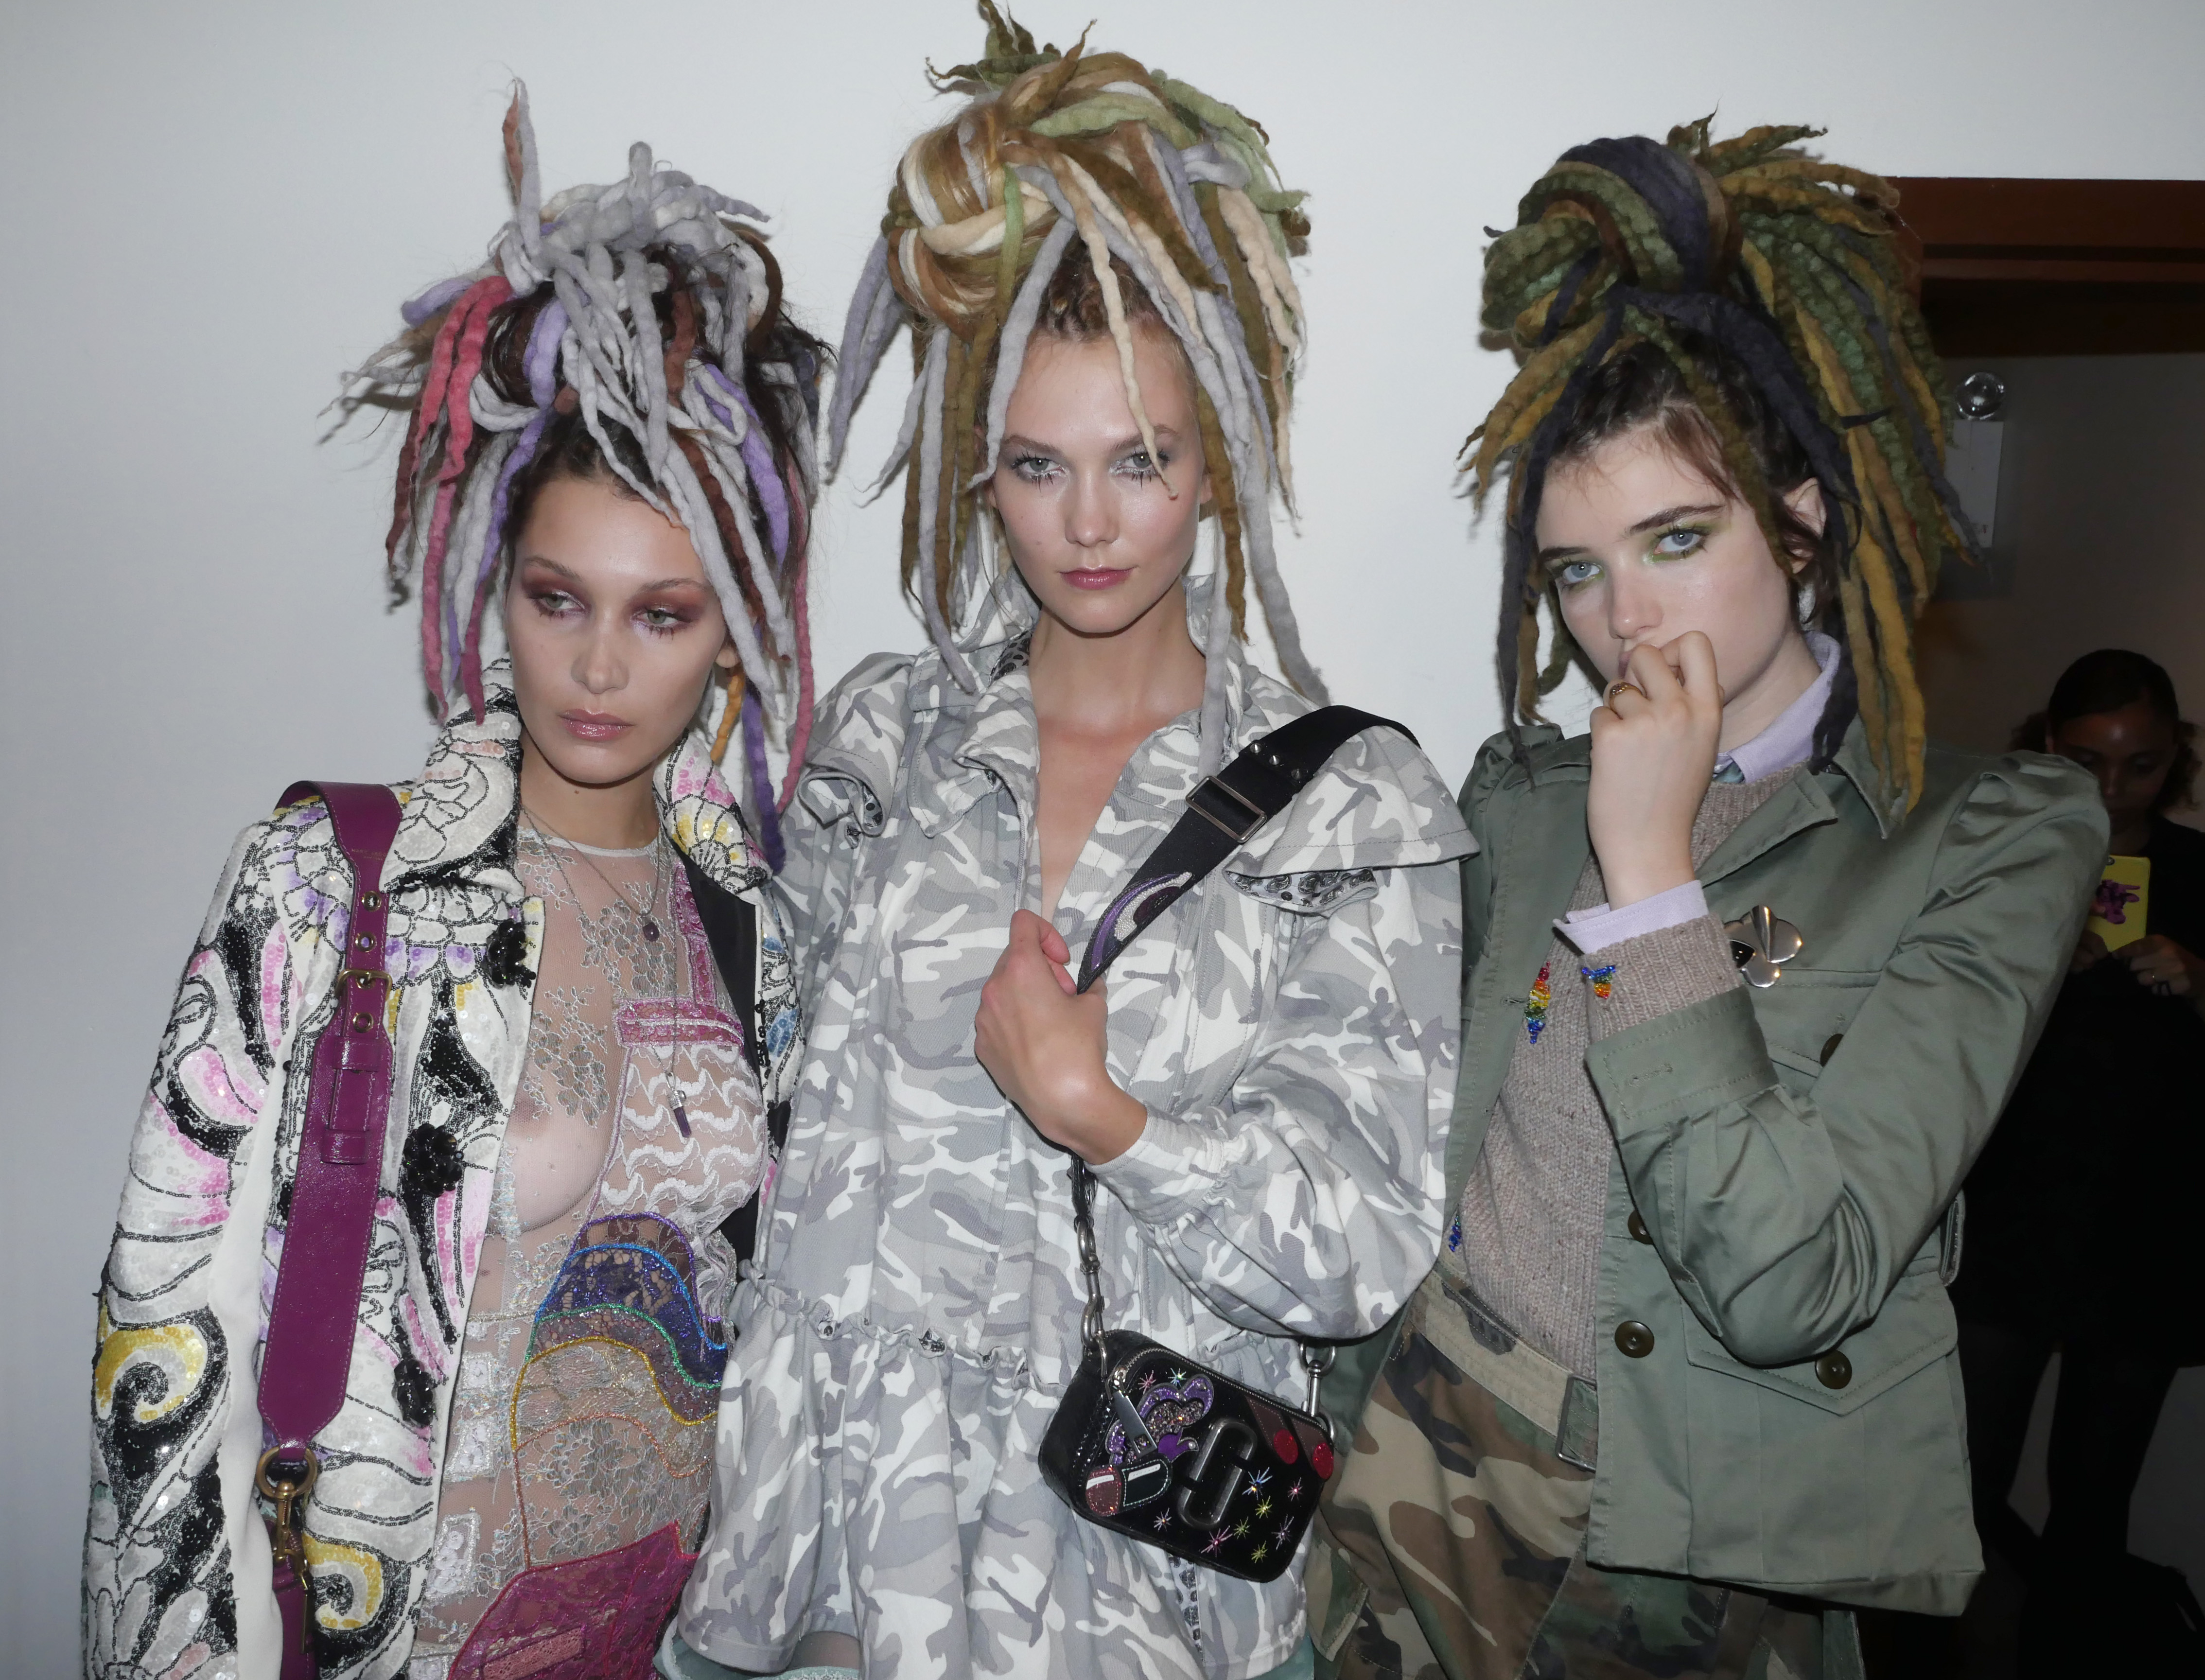 Bella Hadid, Karlie Kloss and Grace Hartzel backstage at the Marc Jacobs spring 2017 runway show in dreadlock wigs, which Jacobs apologized for after the show.